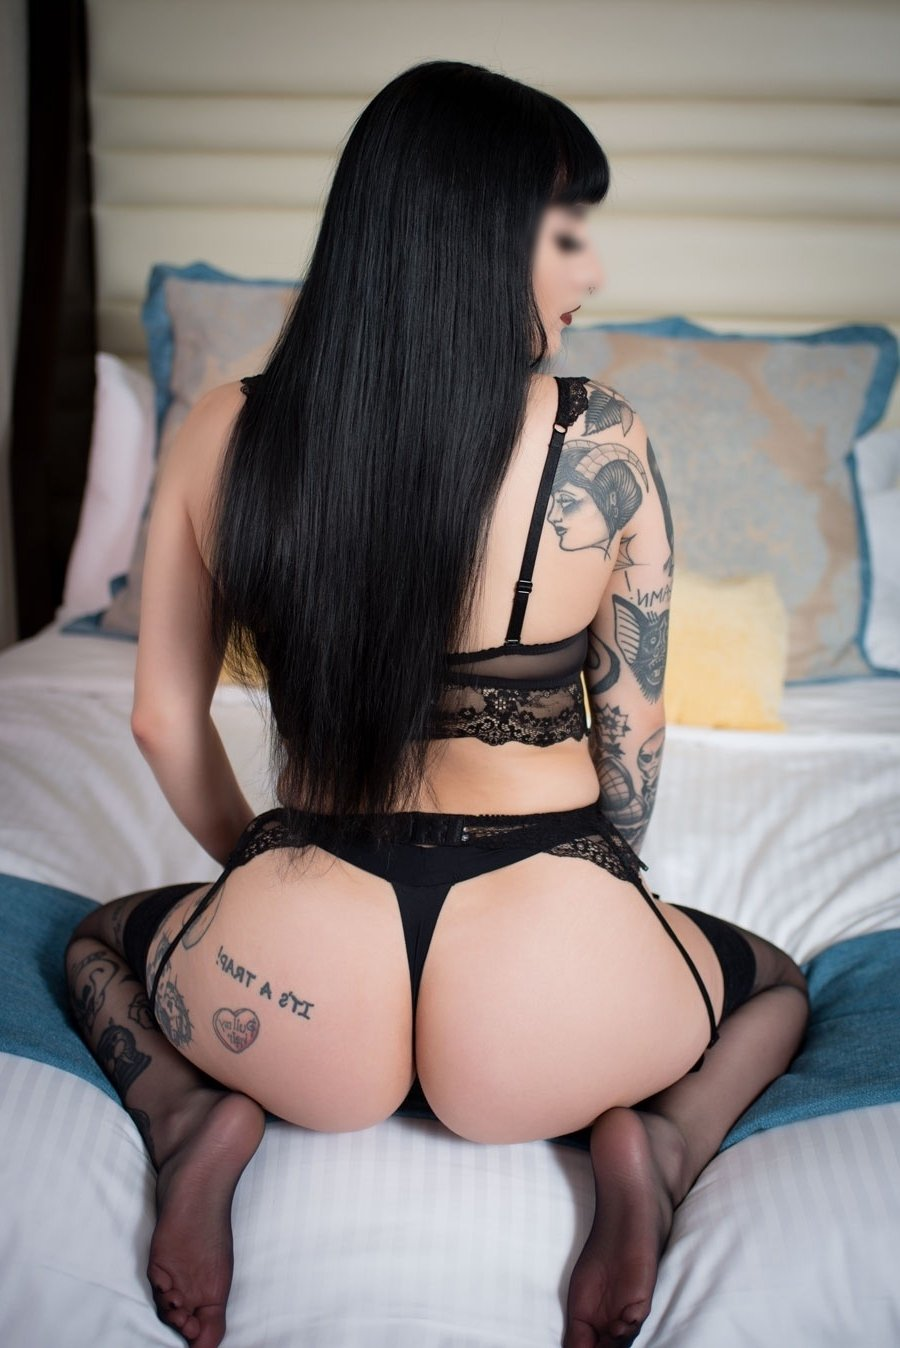 incall escorts montgomery hookers in montgomery al incall escorts montgomery hookers in montgomery al